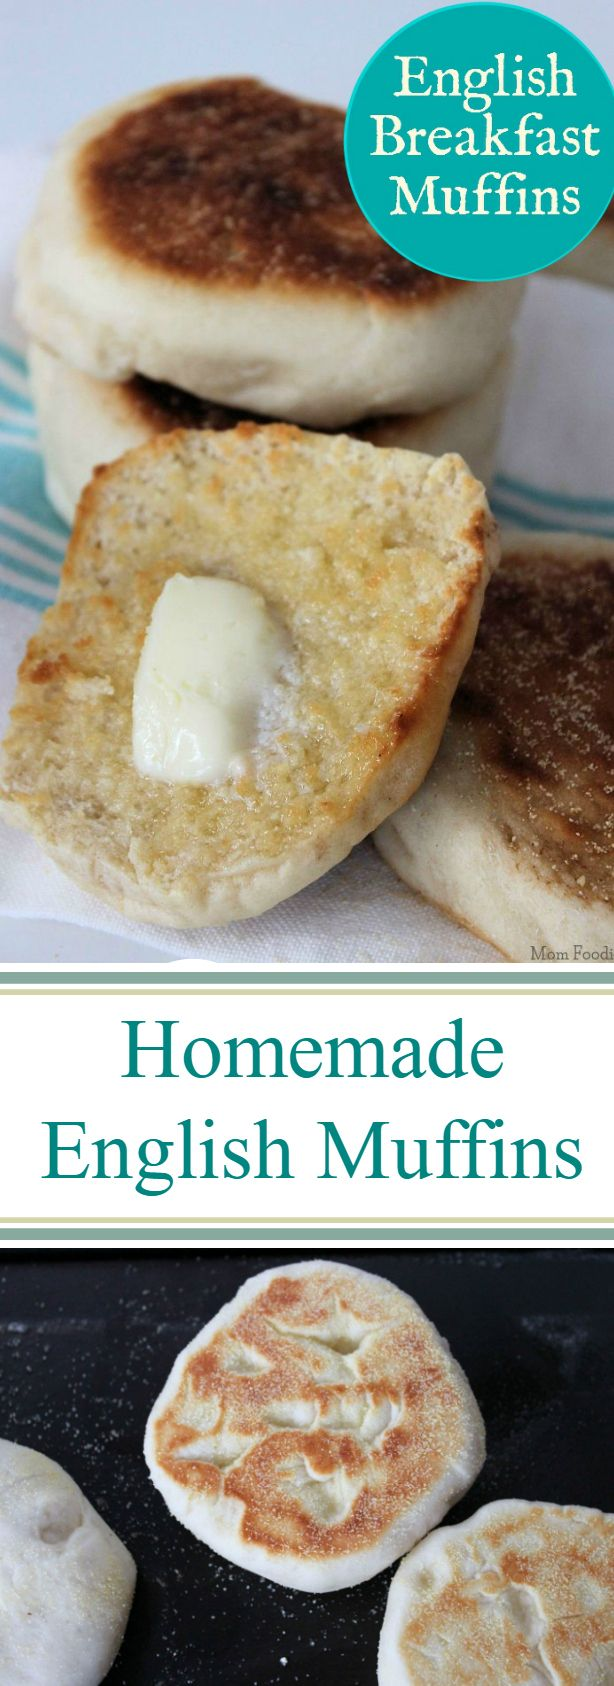 English Breakfast Muffins, known simply as English muffins to most of us are actually pretty easy to make.  Have your family enjoying your own homemade English muffins with this simple recipe.